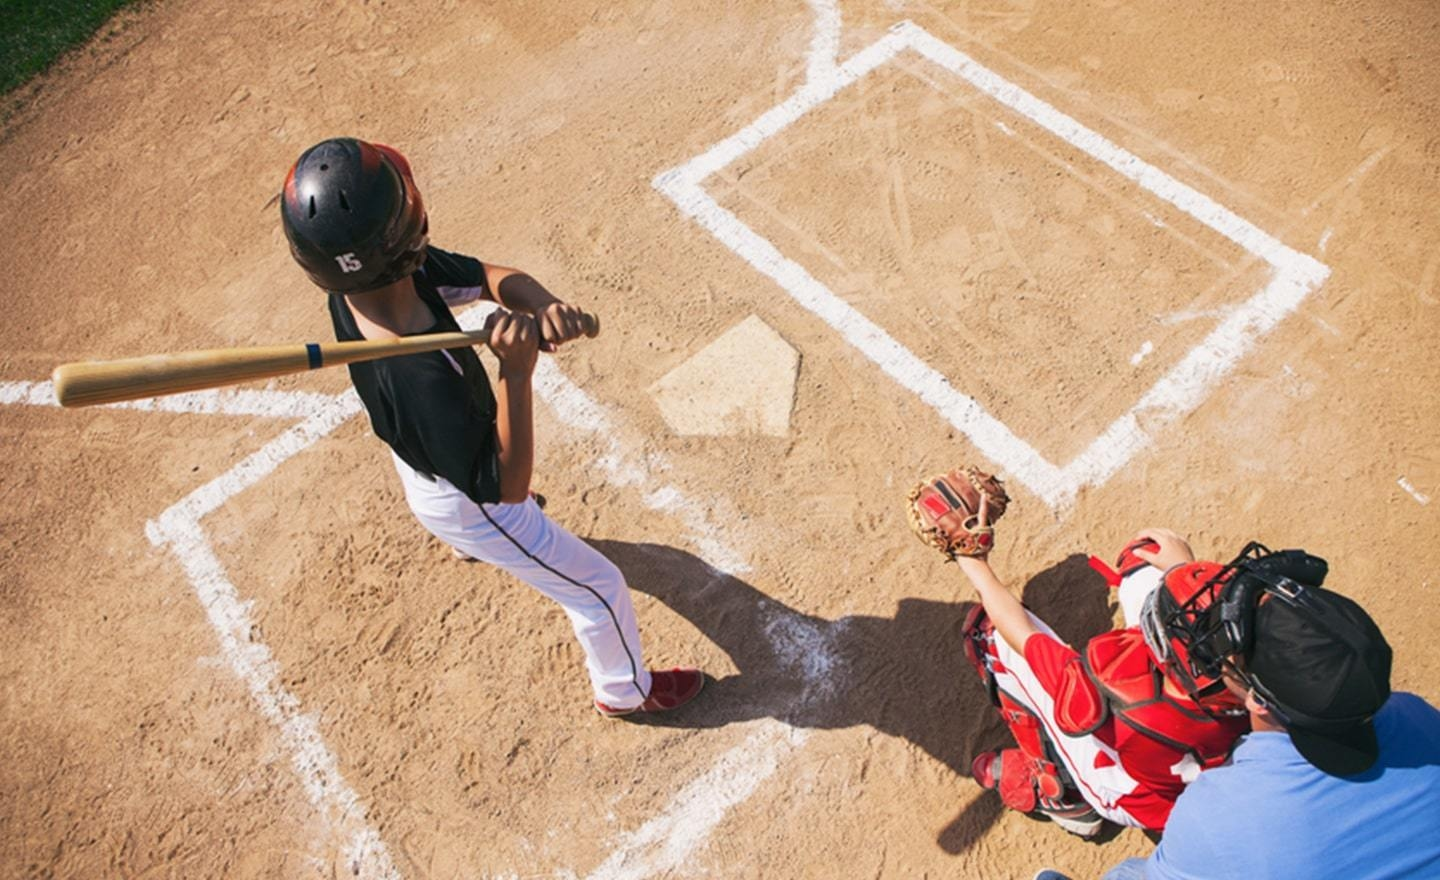 Batter and catcher at baseball plate